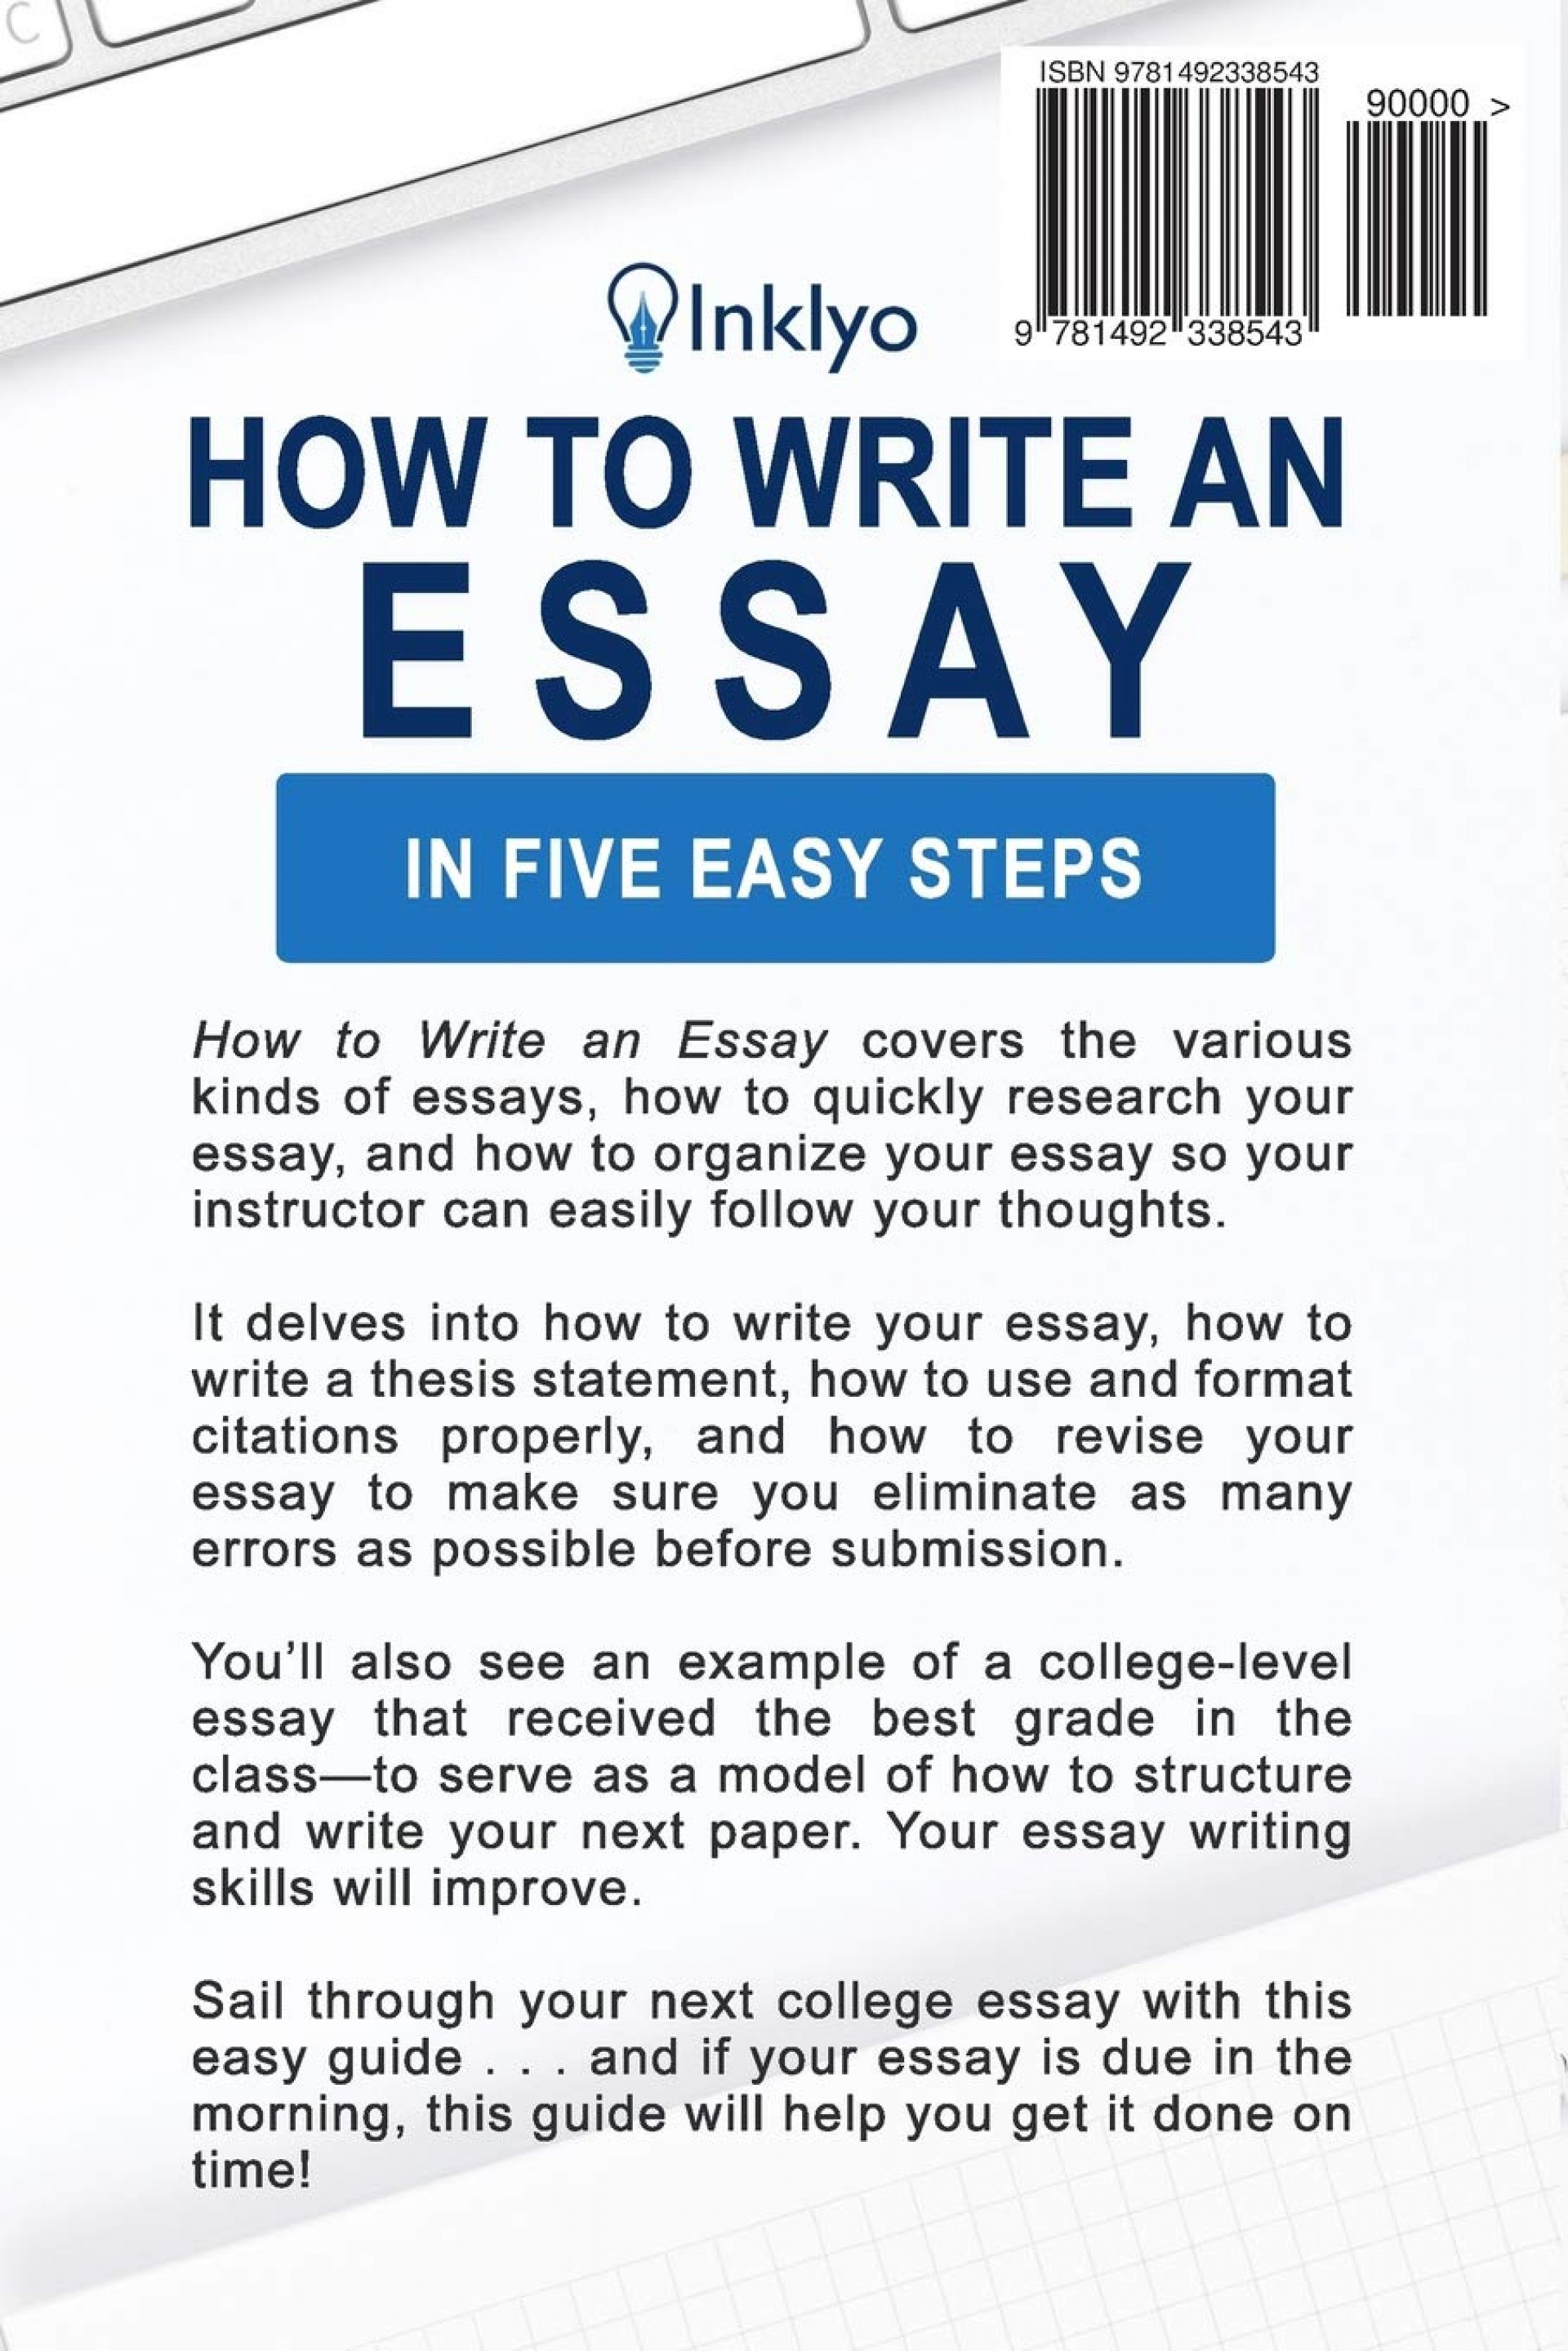 004 Essay Example Write An Unbelievable How To Fast In Exam 6 Hours 1920